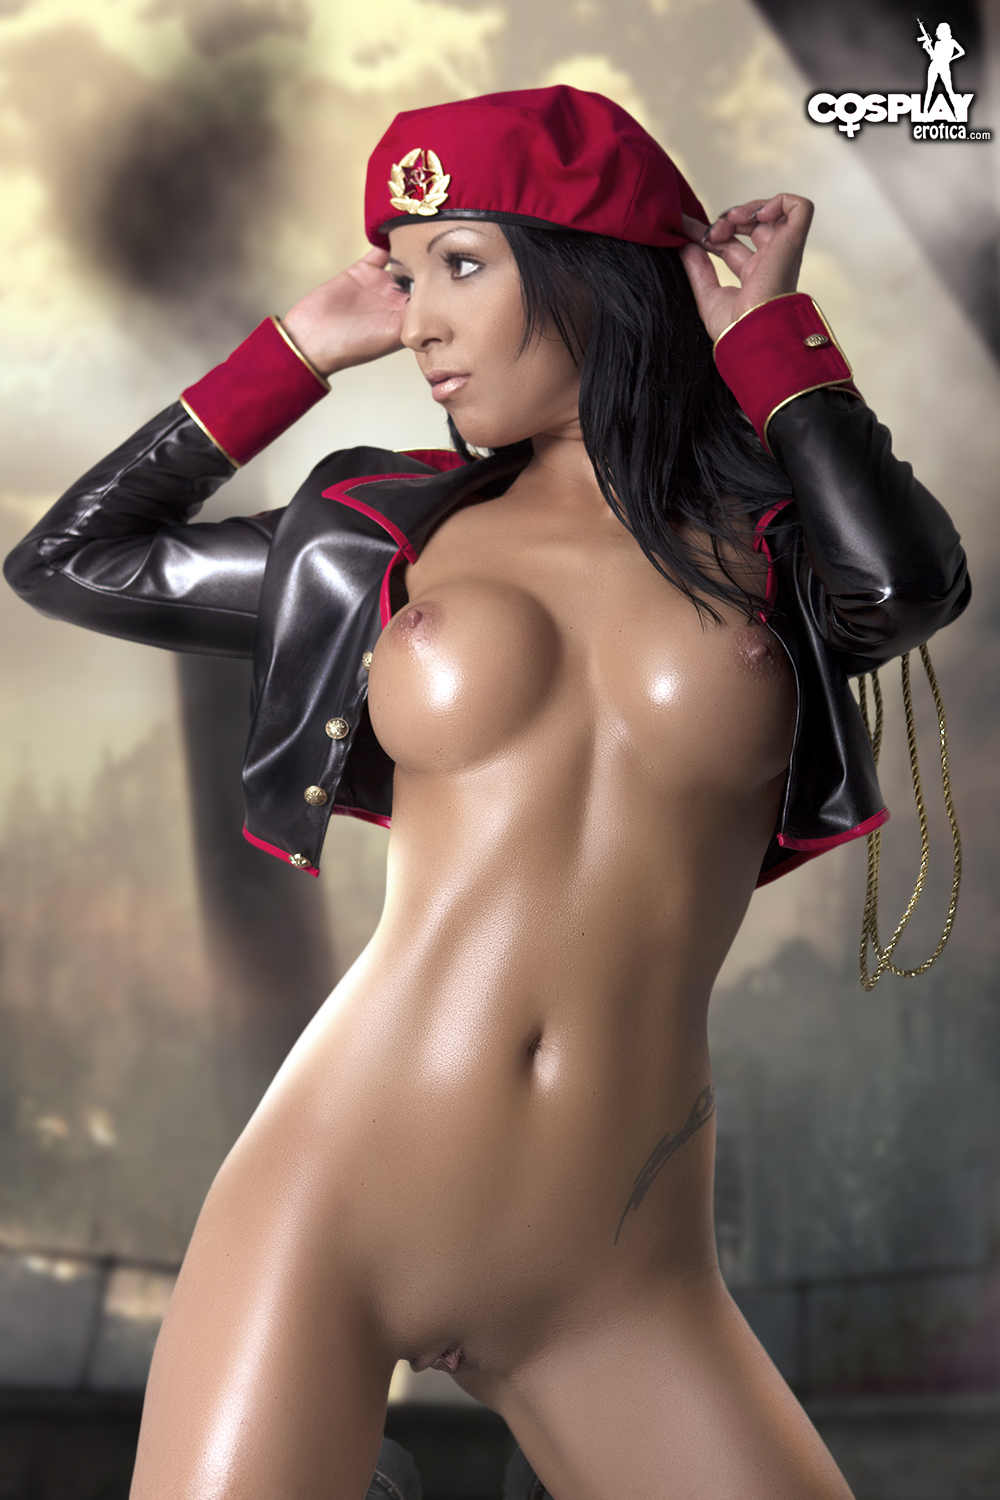 cosplay sexy nude girls movies